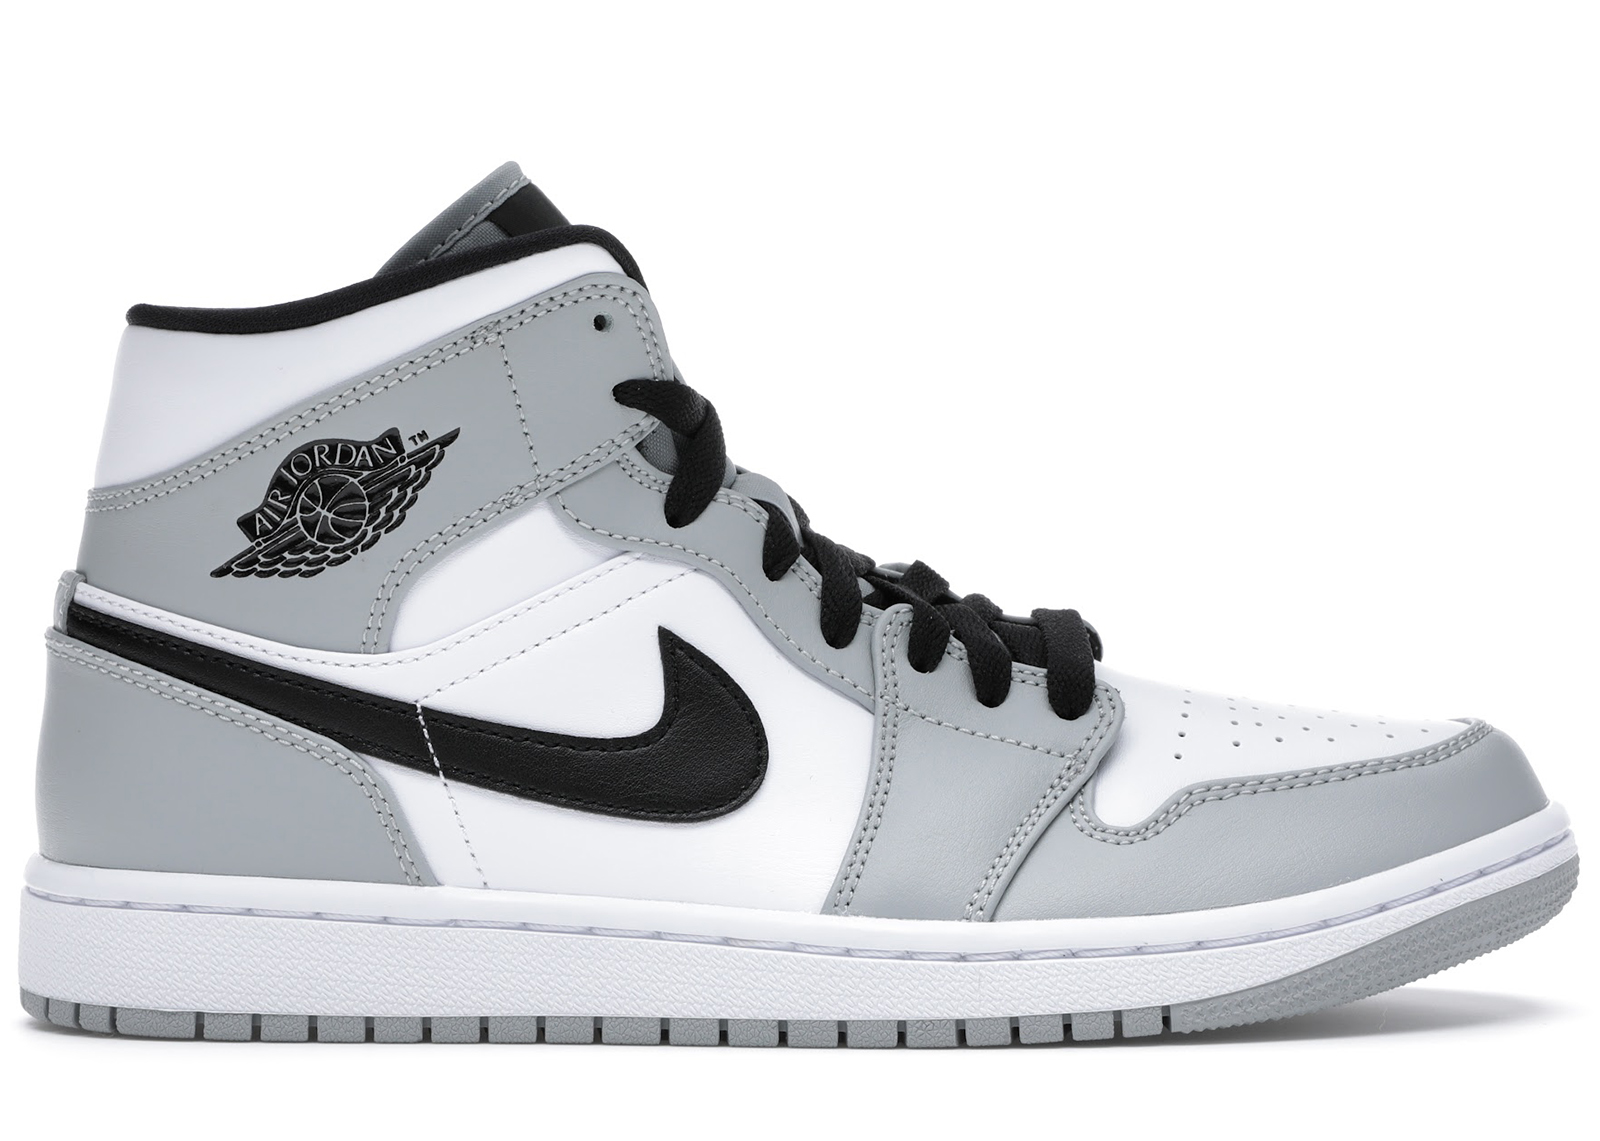 Buy Air Jordan 1 Shoes & Deadstock Sneakers